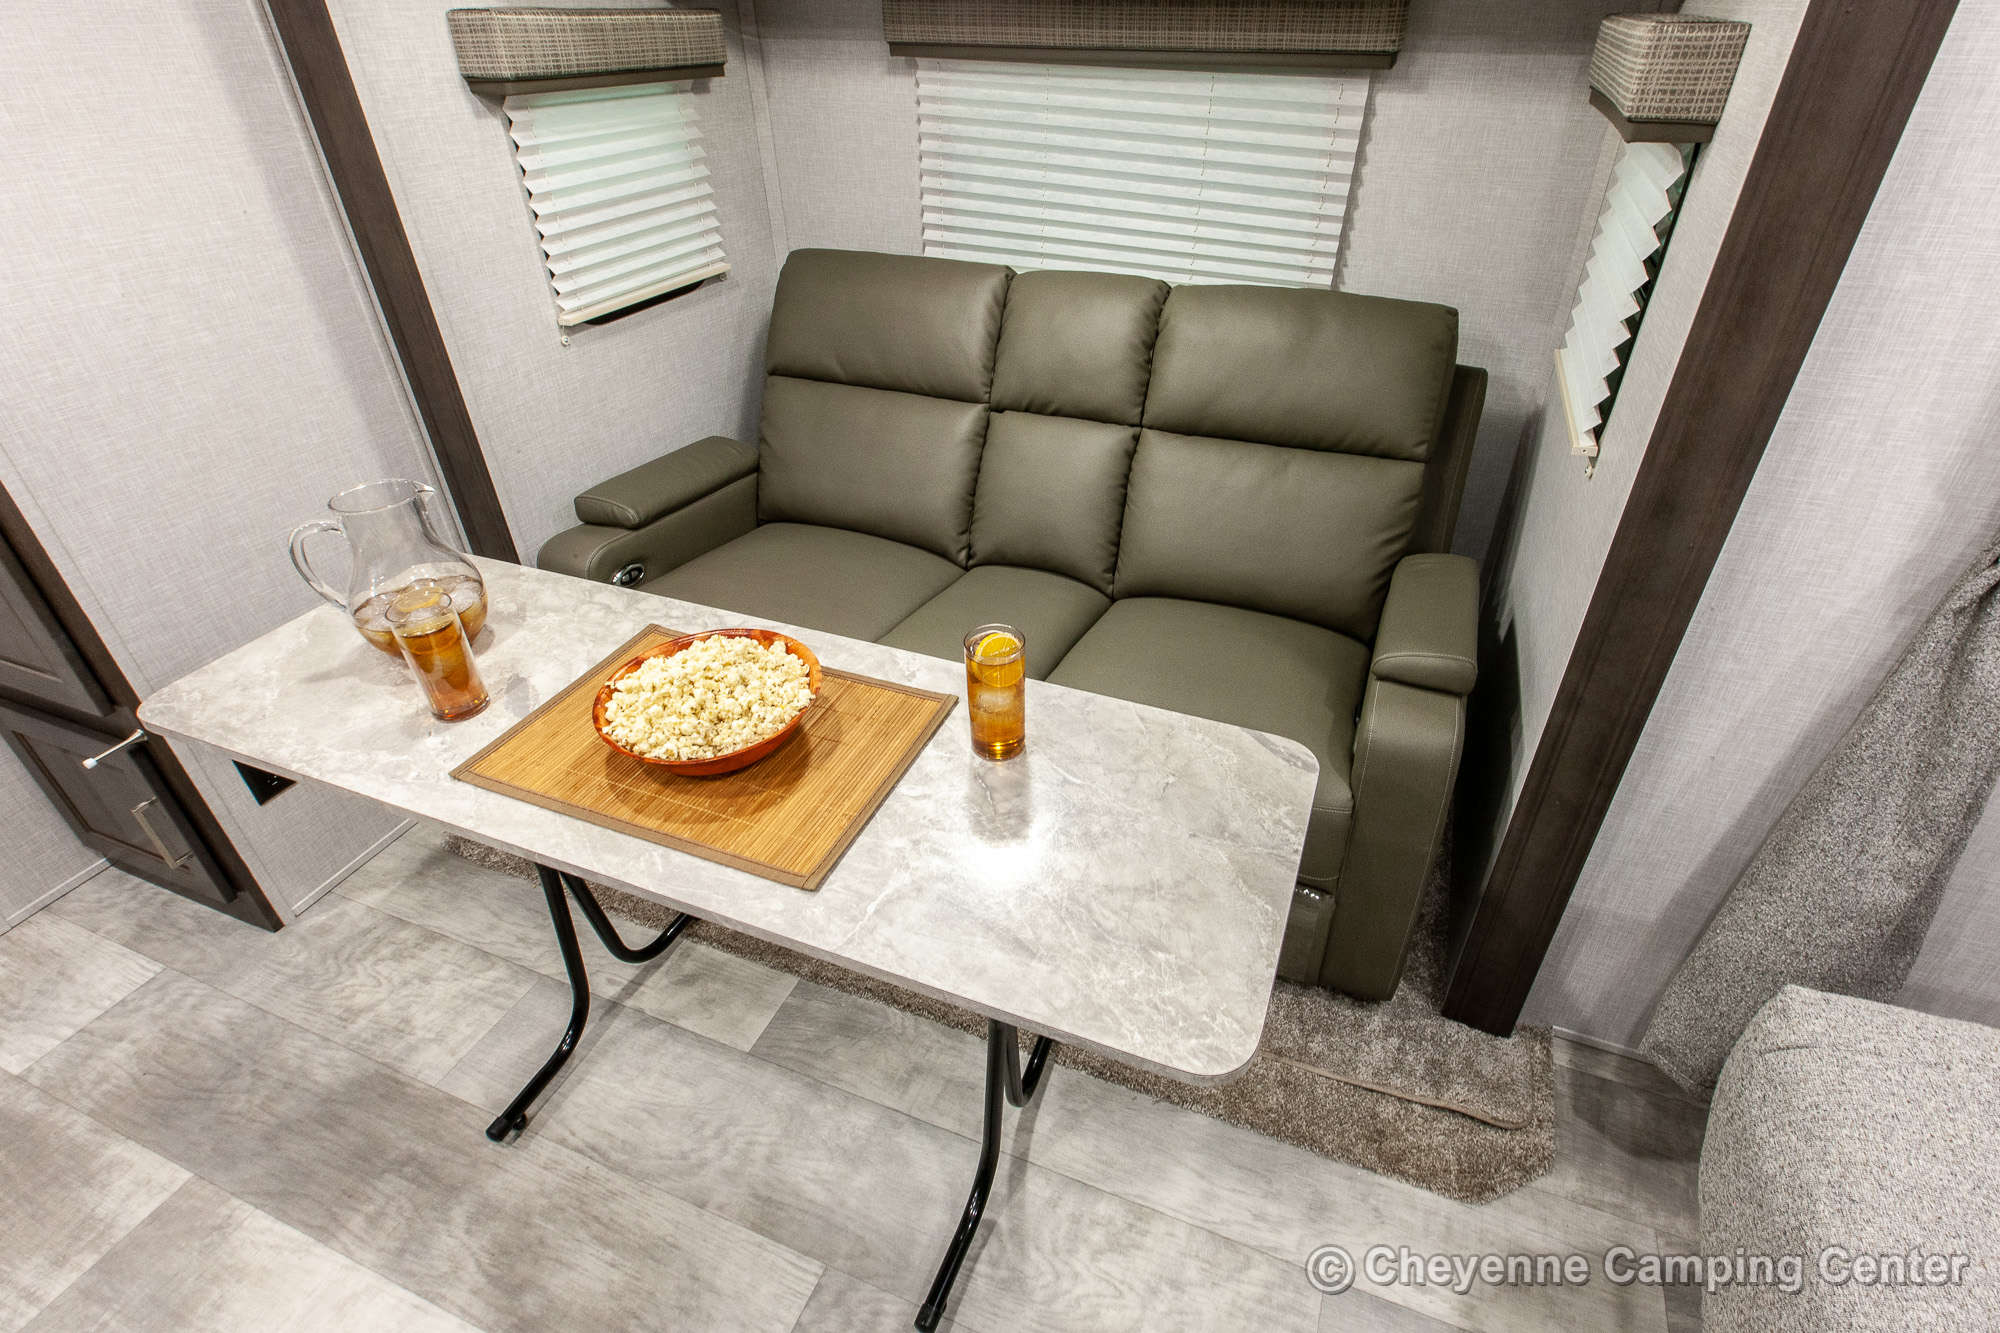 2021 Forest River Flagstaff Micro Lite 22FBS Travel Trailer Interior Image